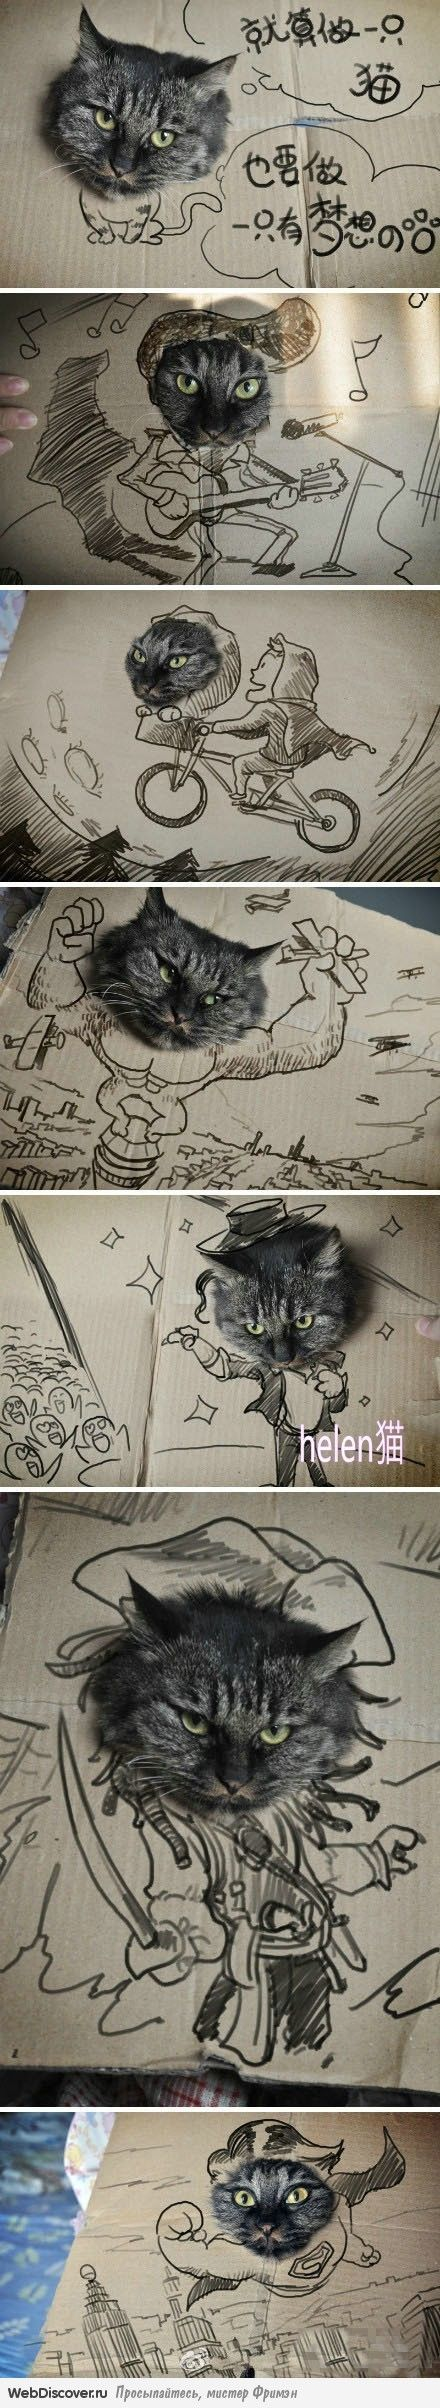 Lol this is like something I'd do to my cats :P